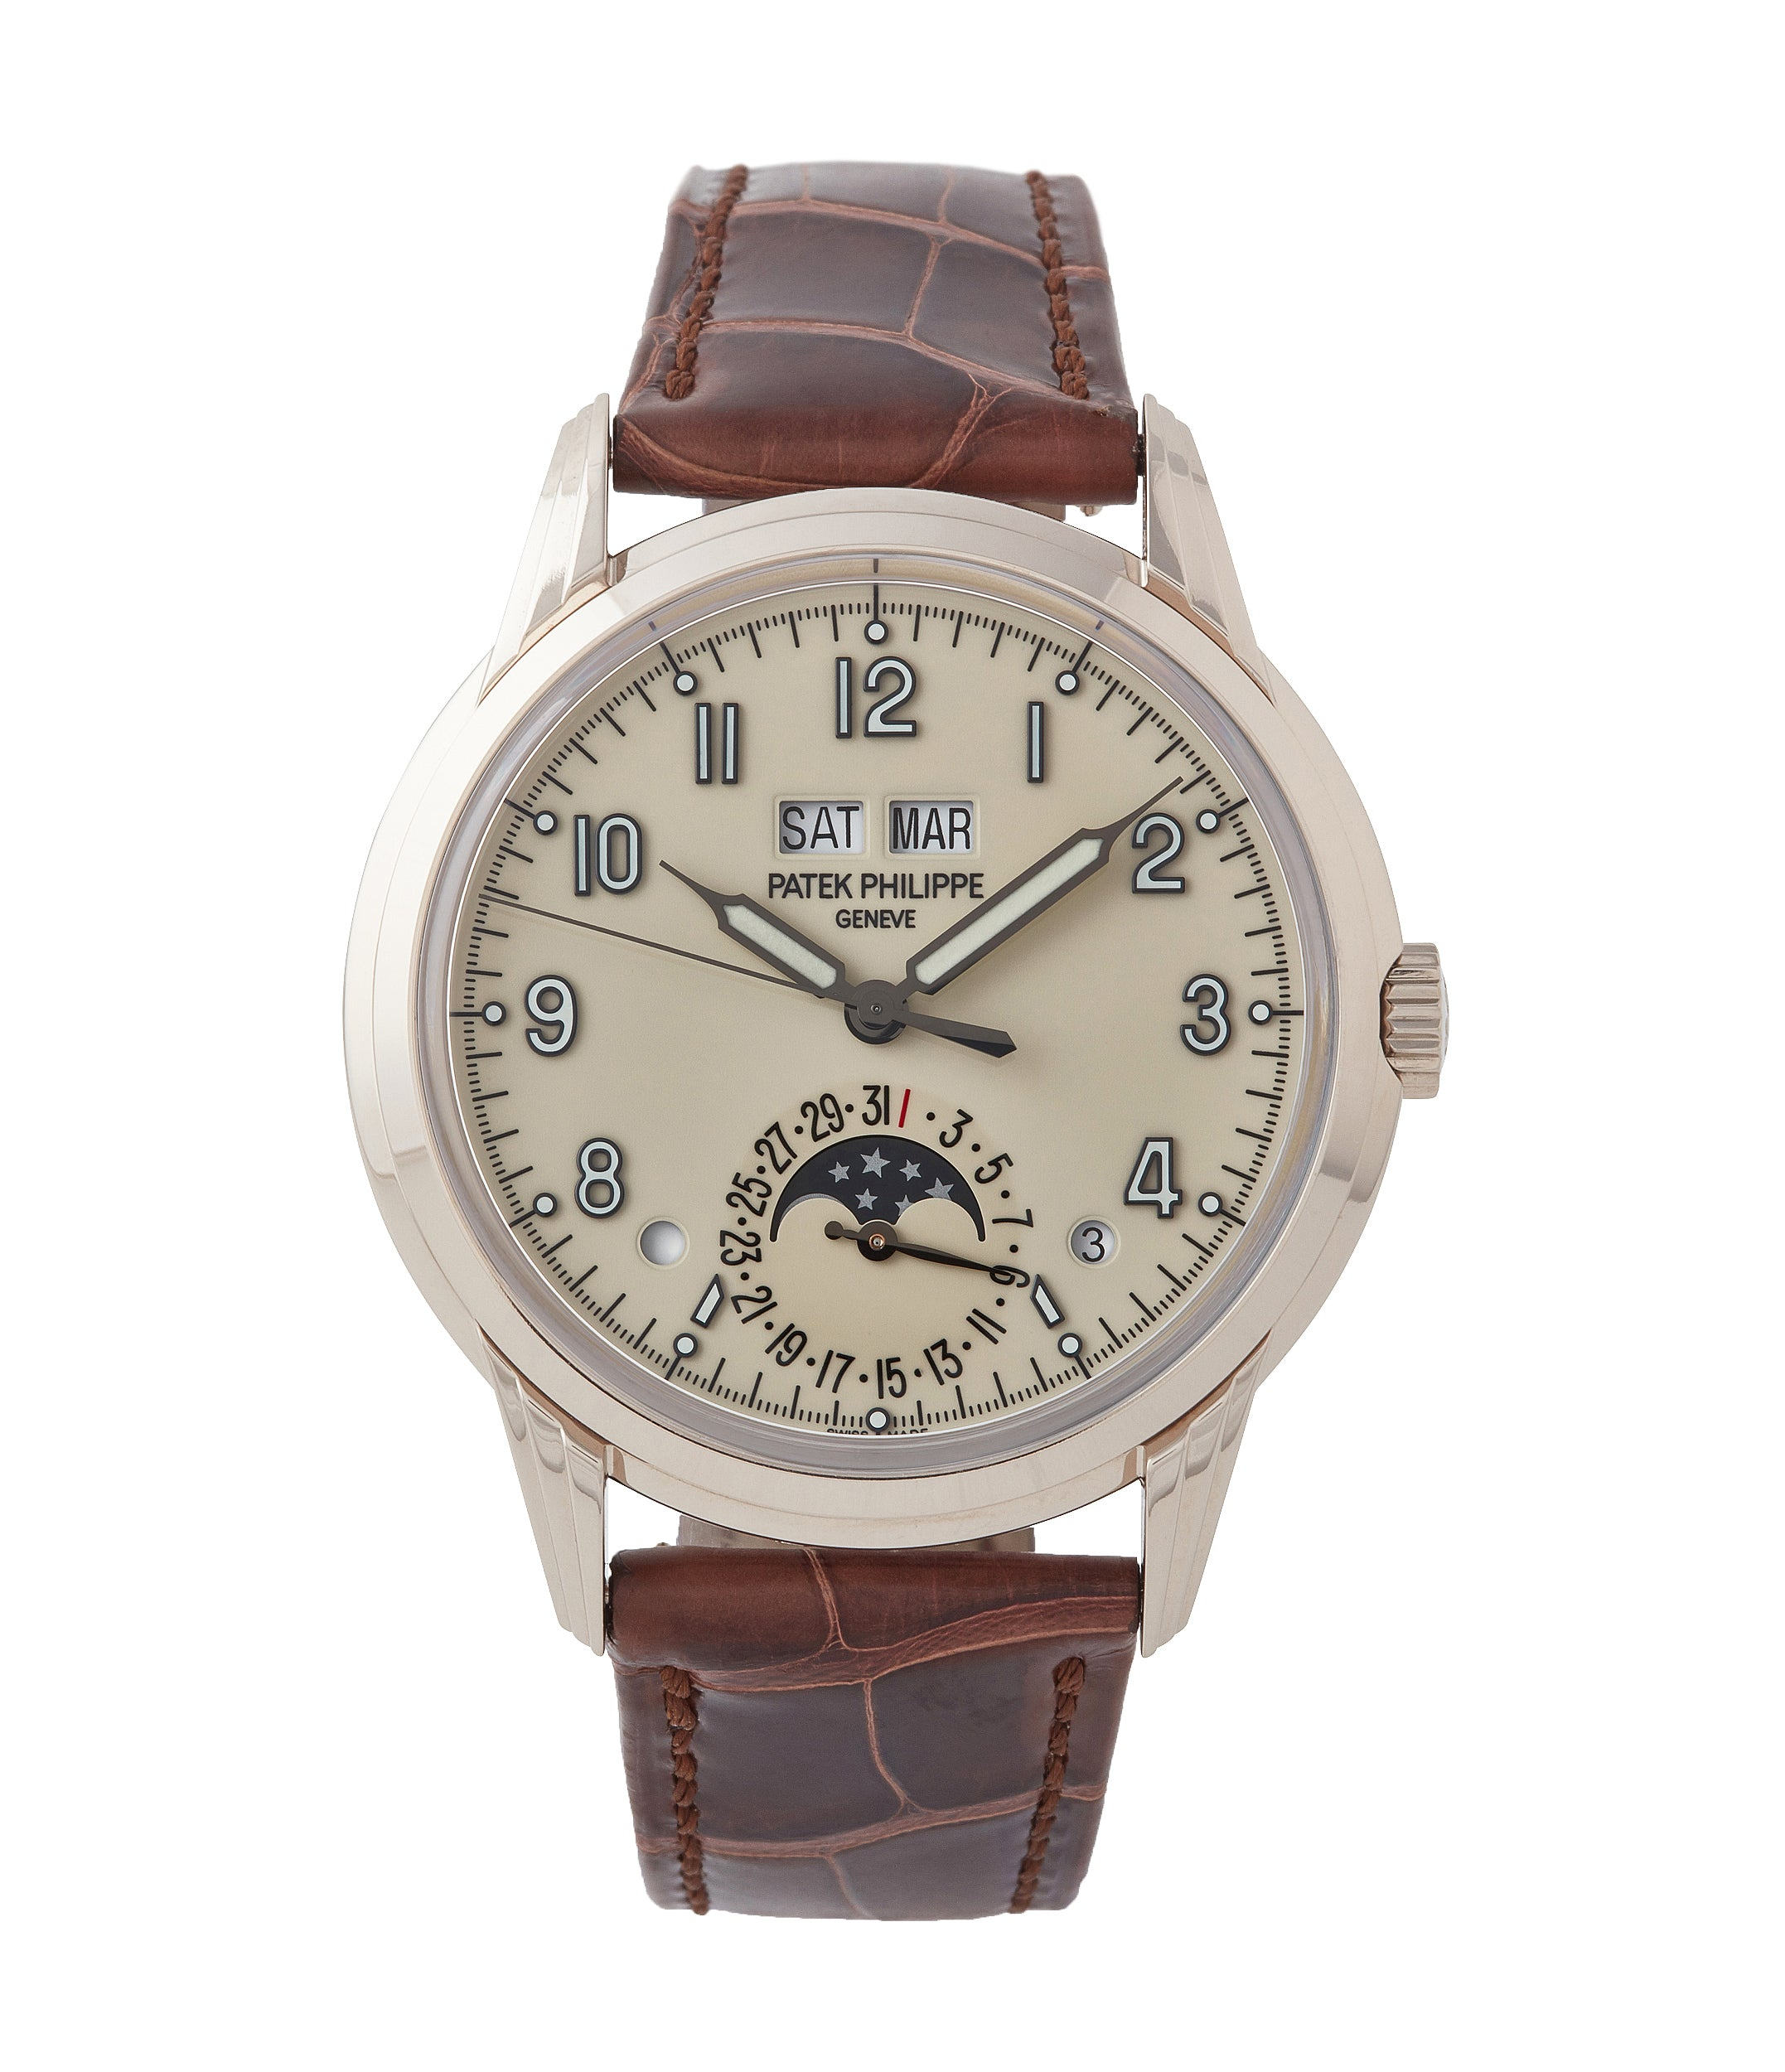 buy Patek Philippe 5320G-001 Perpetual Calendar white gold watch for sale online at A Collected Man London UK specialist of rare watches